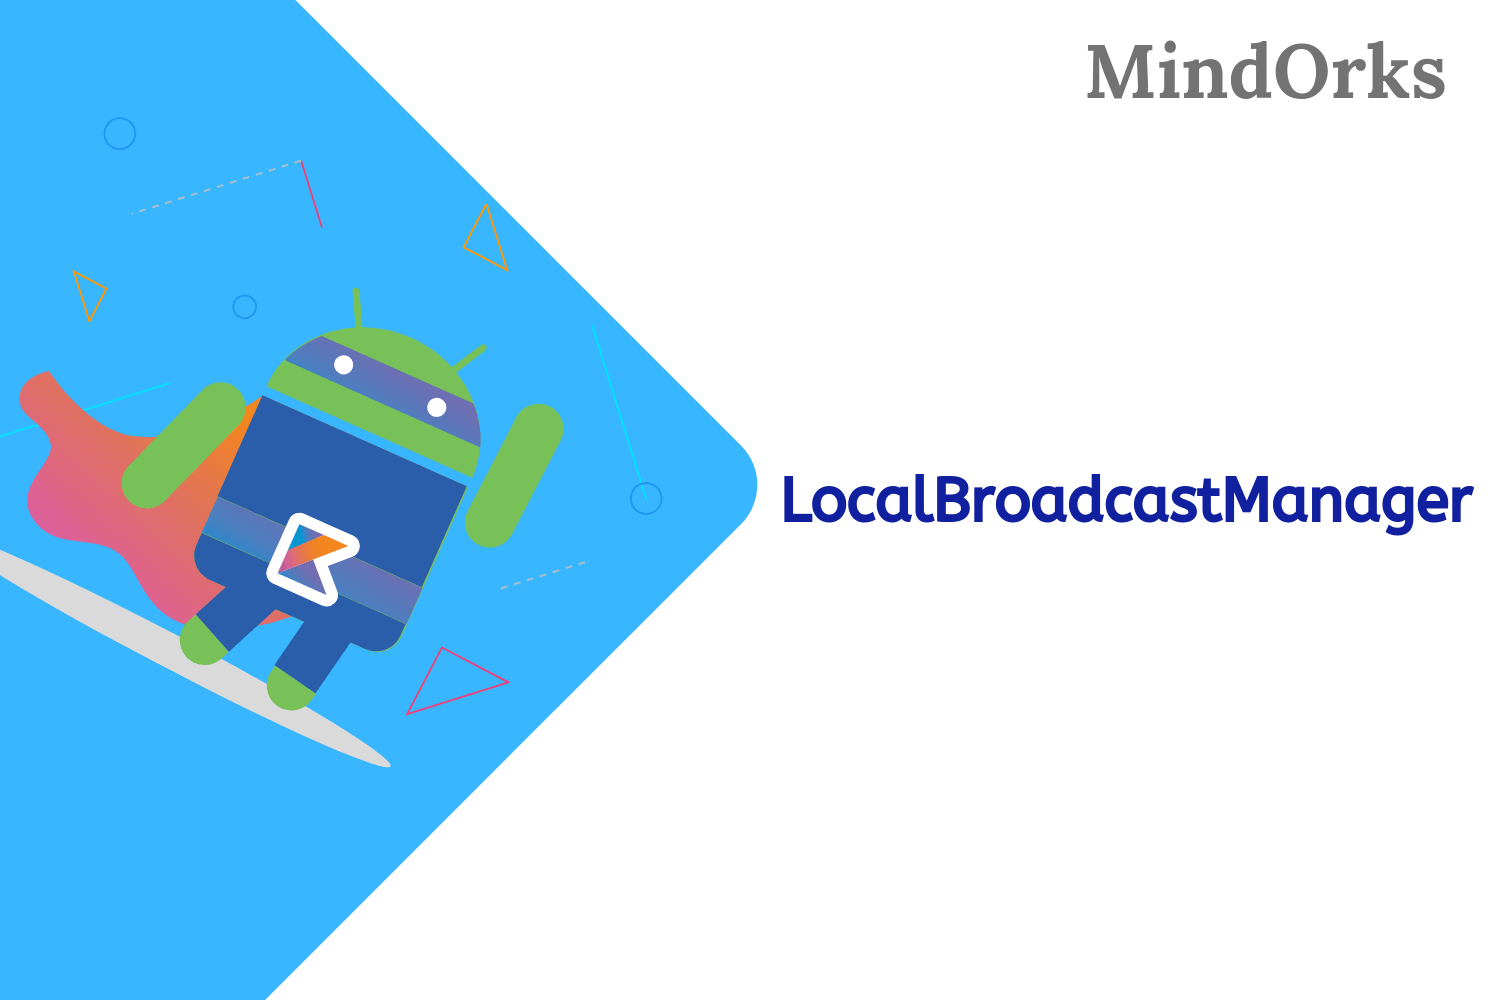 Using LocalBroadcastManager in Android